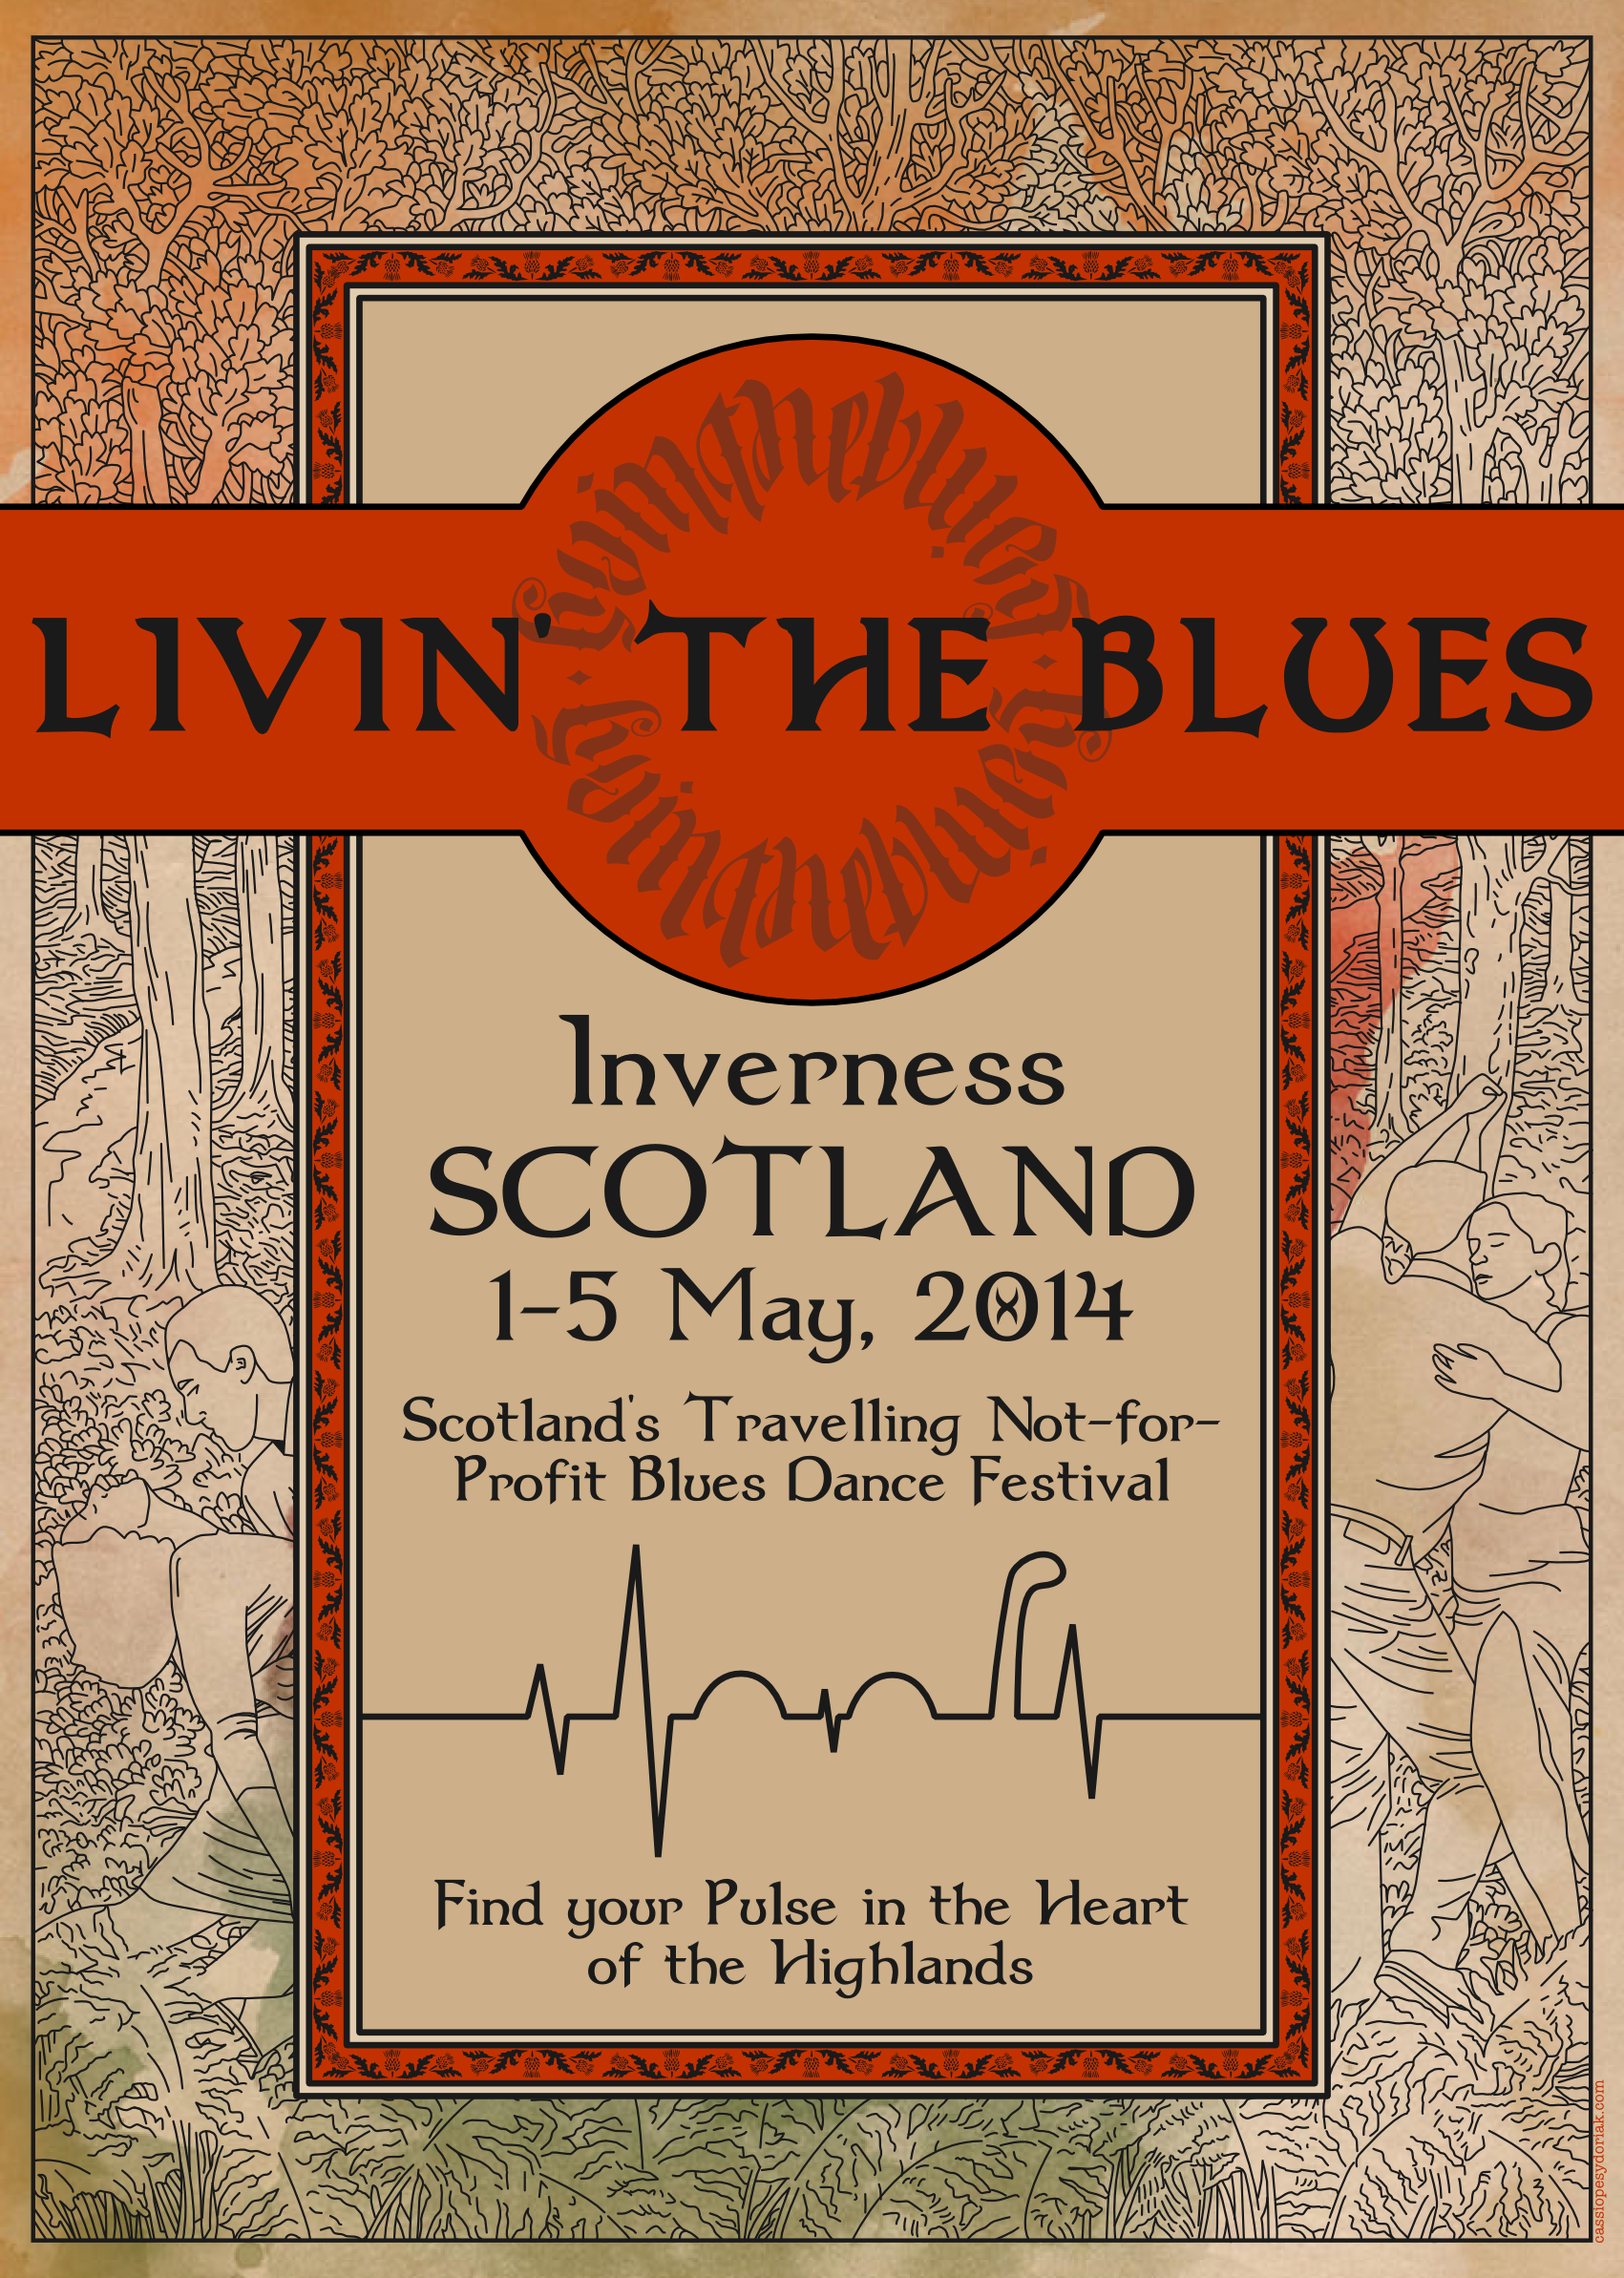 Livin' the Blues, Inverness, Scotland